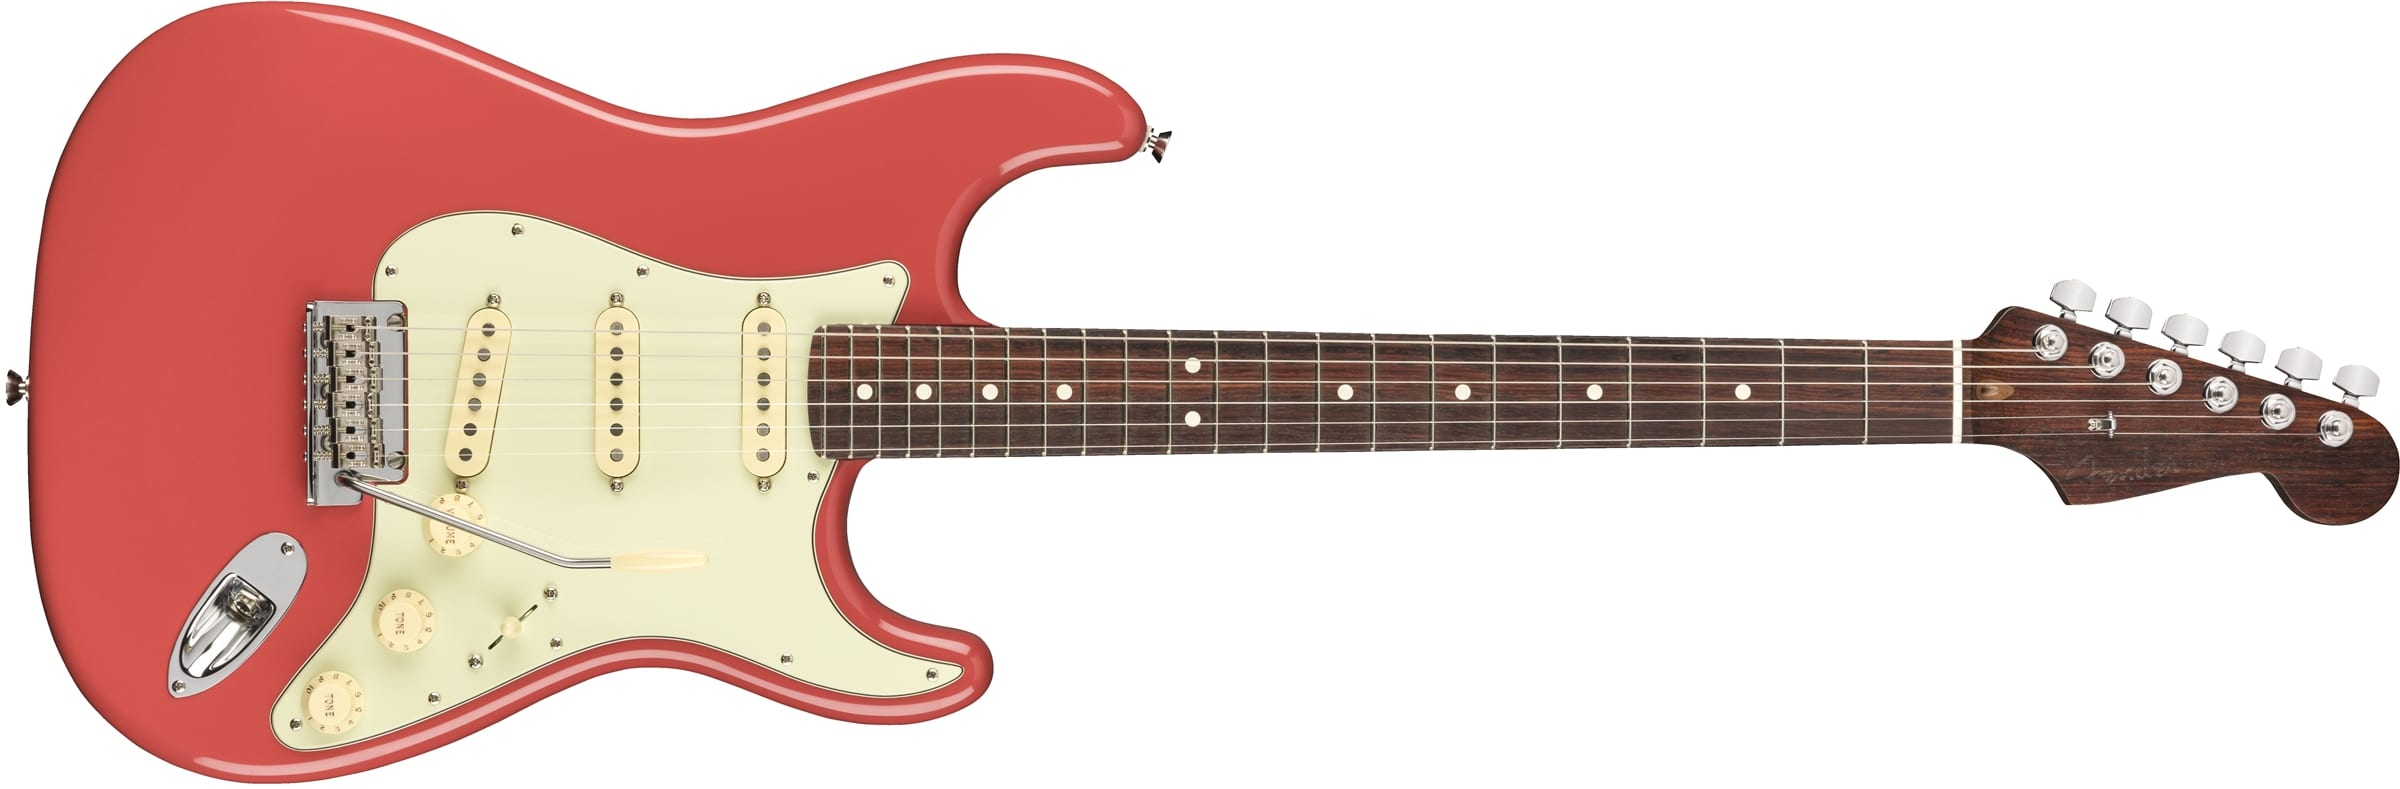 Fender 2020 Limited Edition American Professional Stratocaster in Fiesta Red